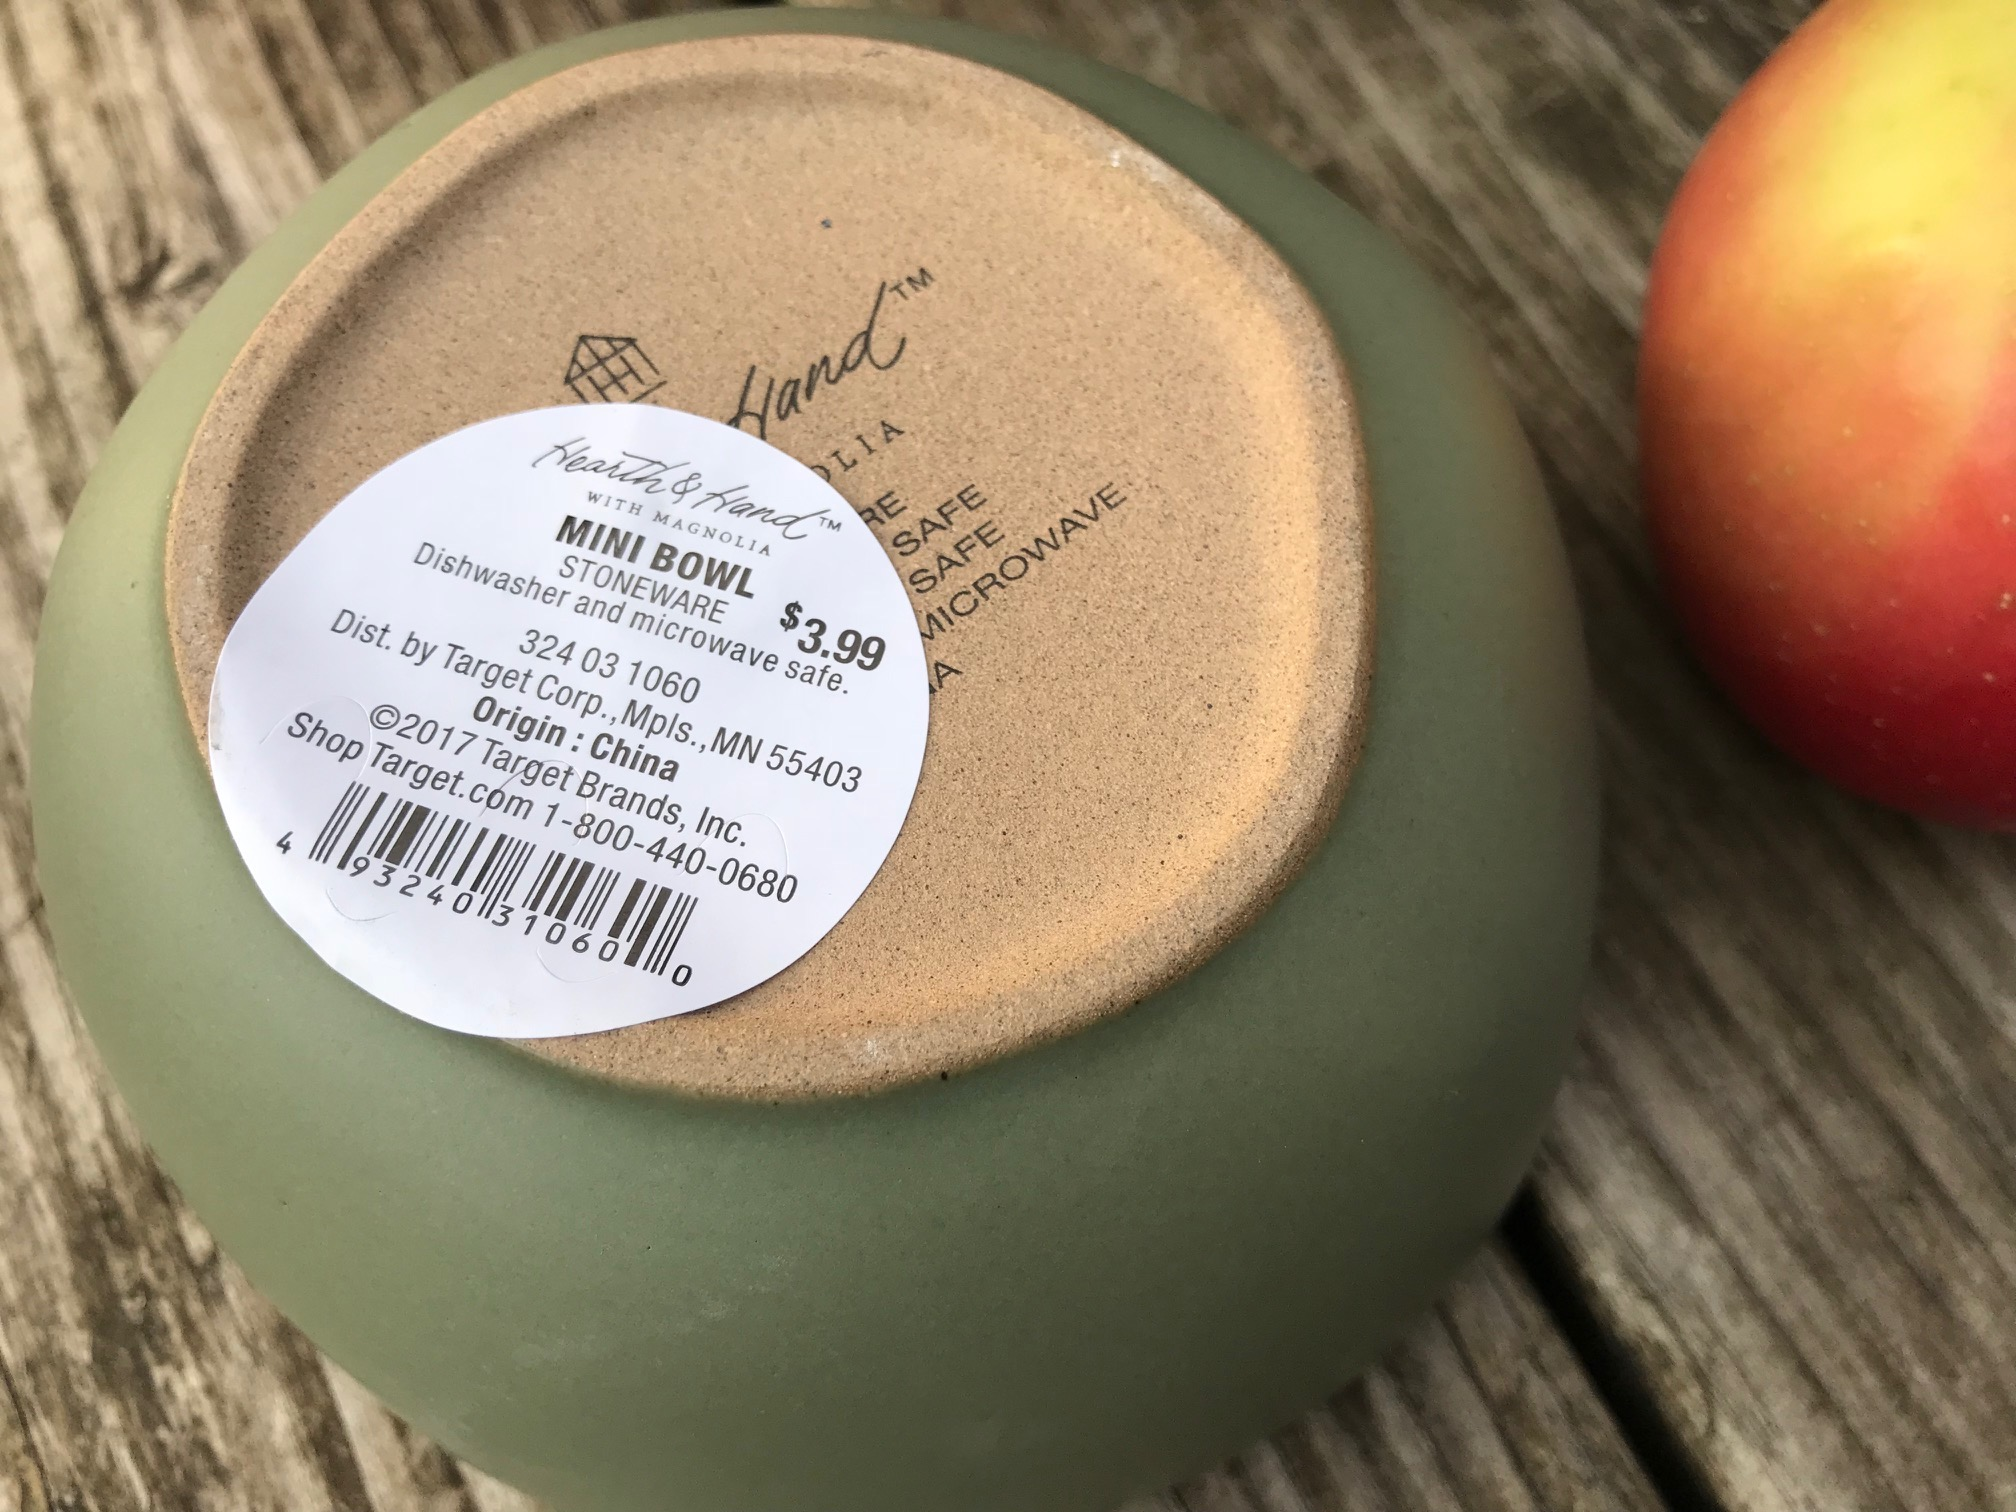 Green Glazed Stoneware Bowl From Target's Hearth & Hand With Magnolia by Chip & Joanna Gaines